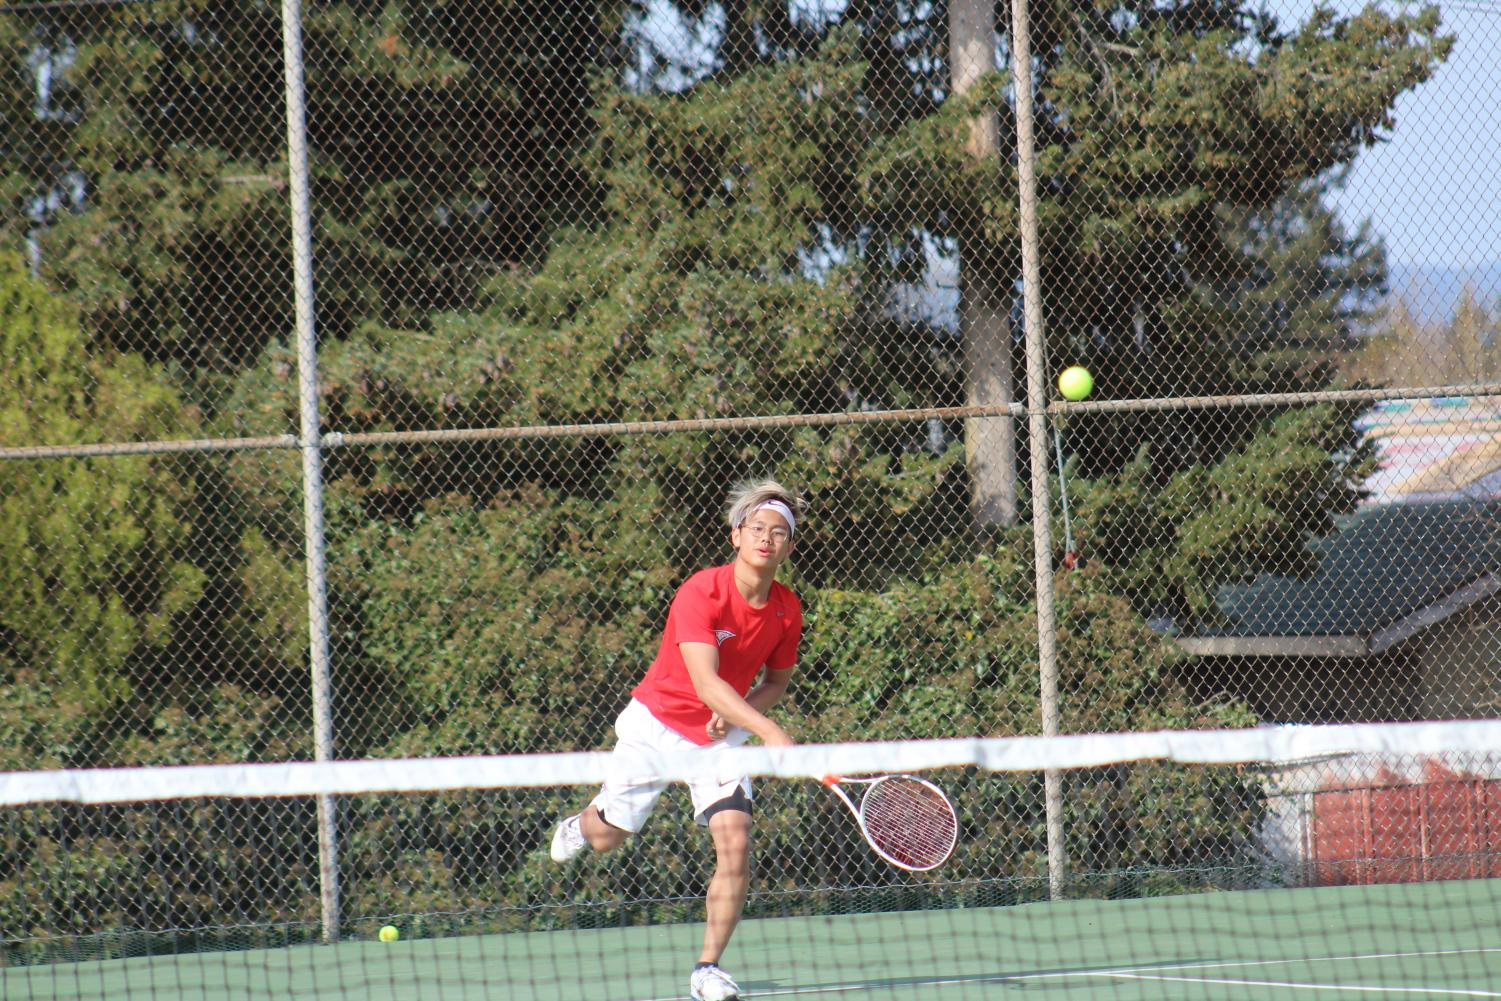 Austin Peng reaching for a ball.